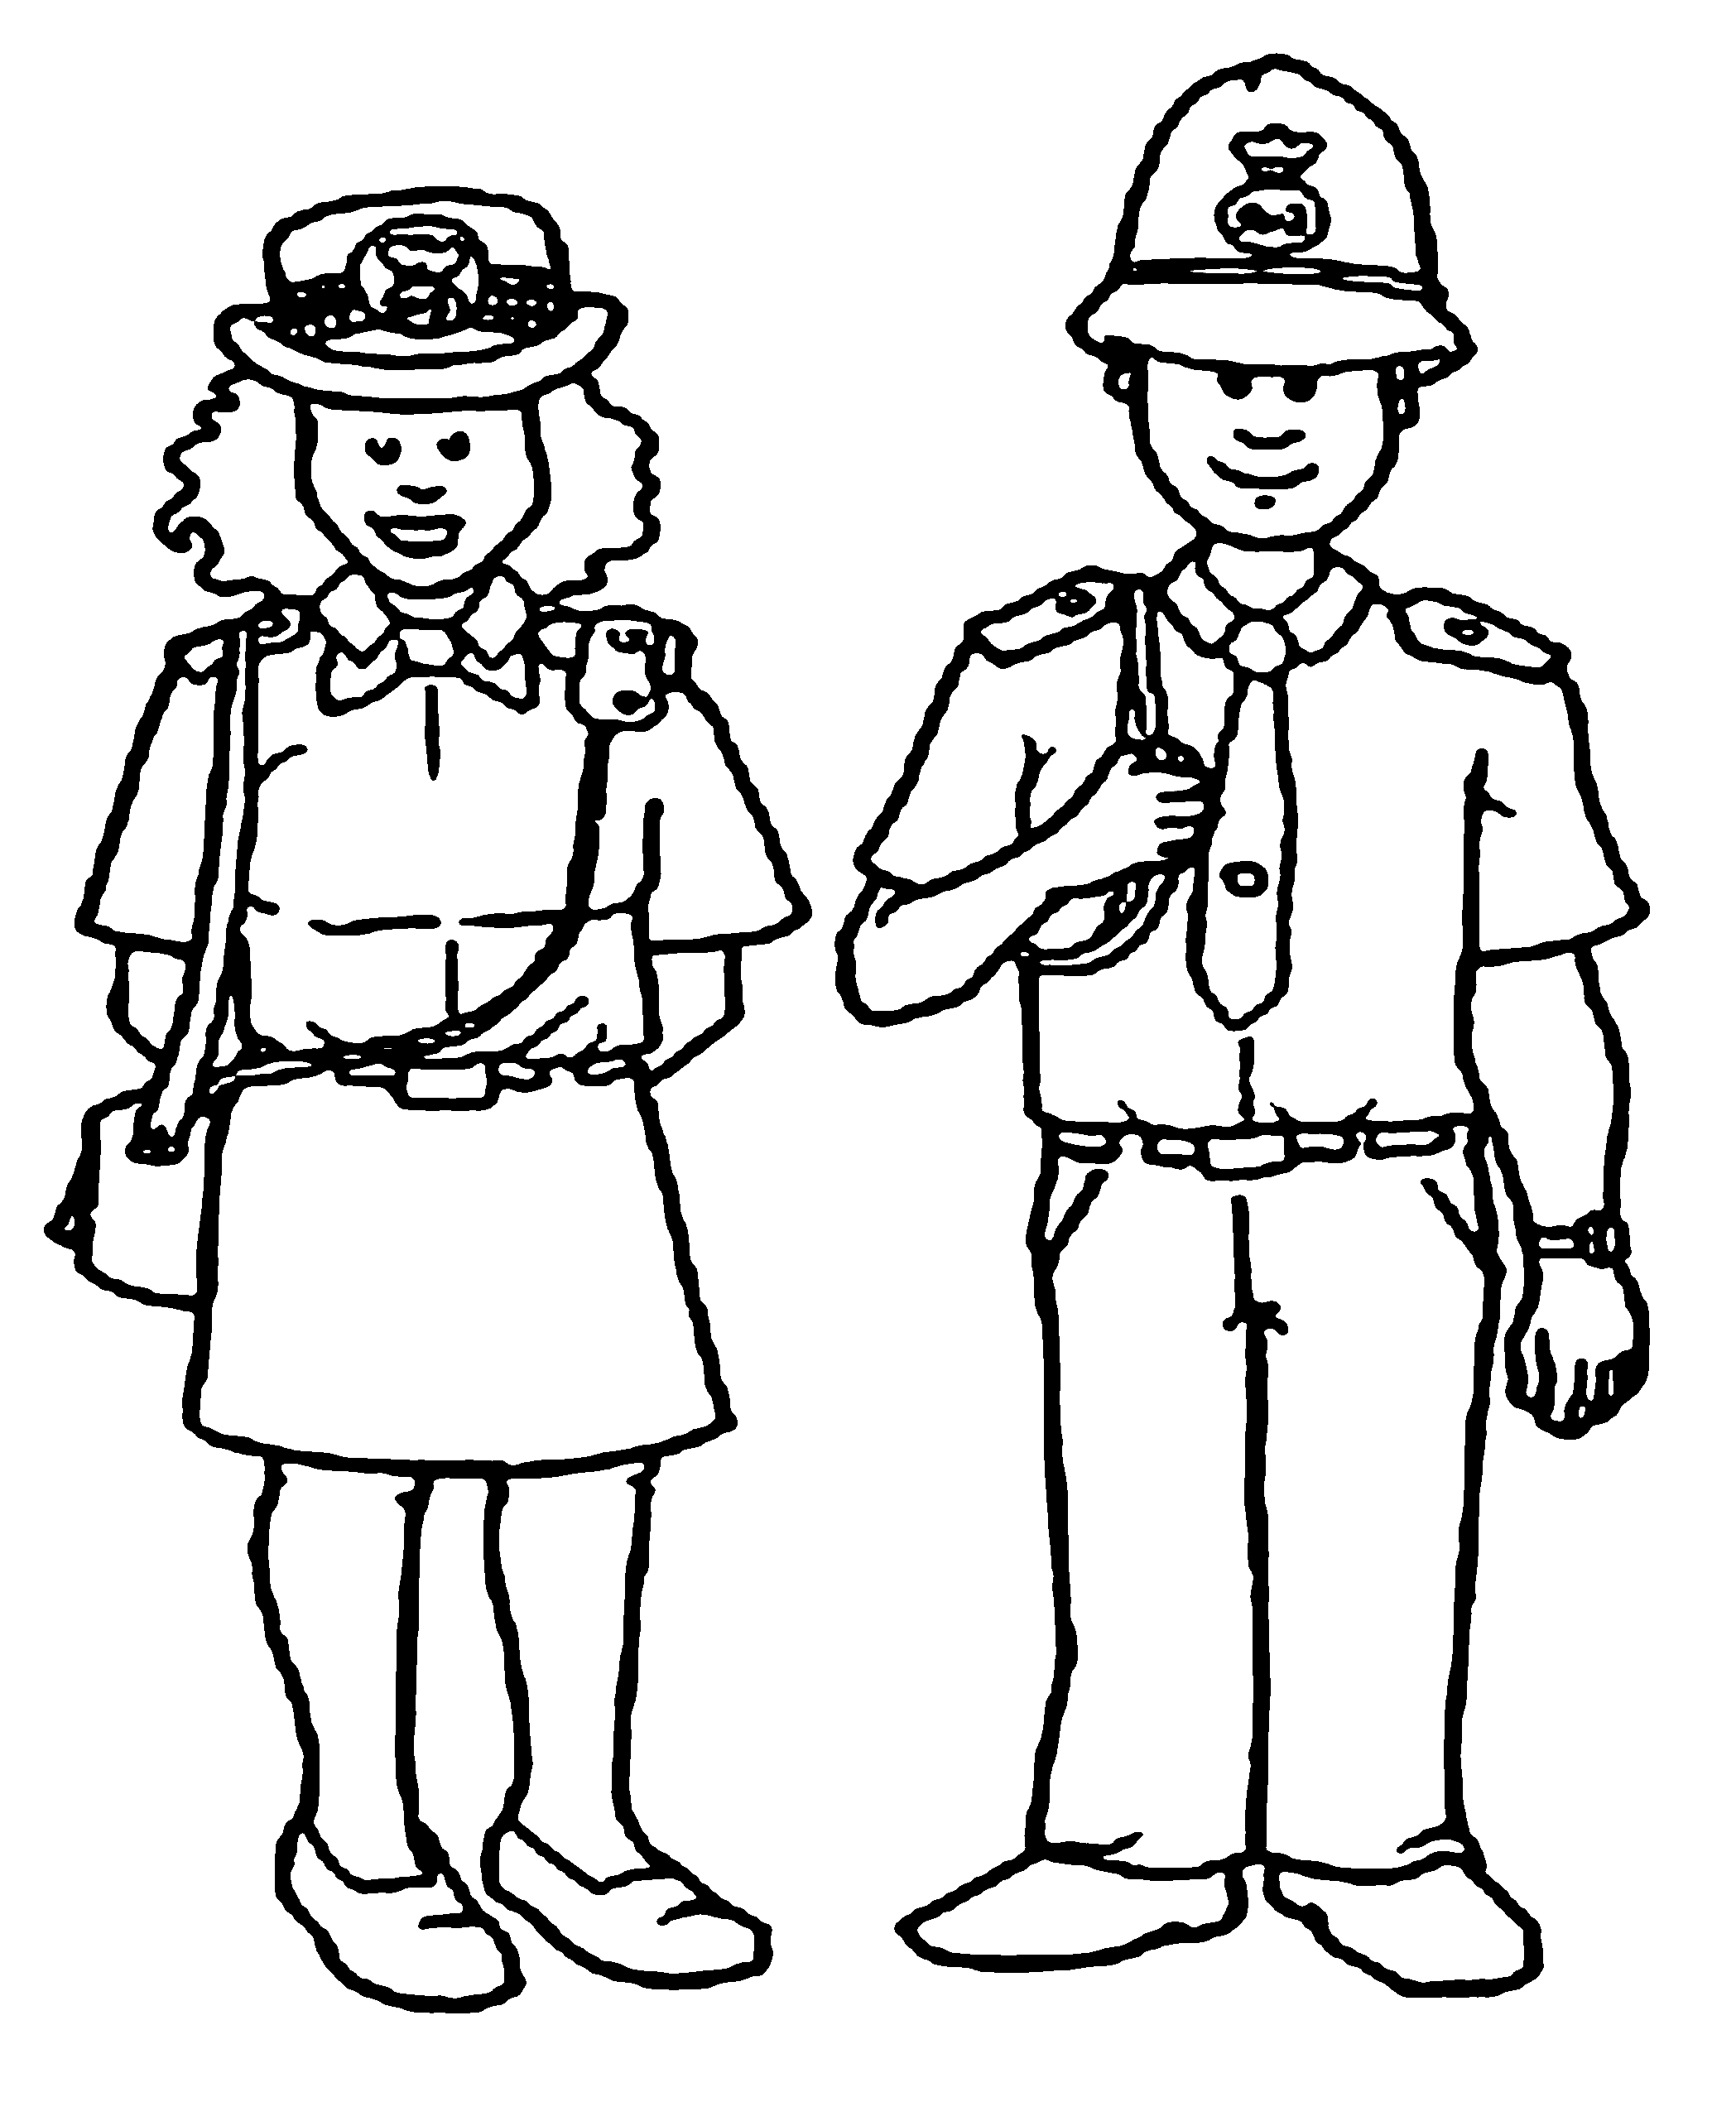 police coloring pages judy hoops i am police coloring page wecoloringpagecom pages police coloring